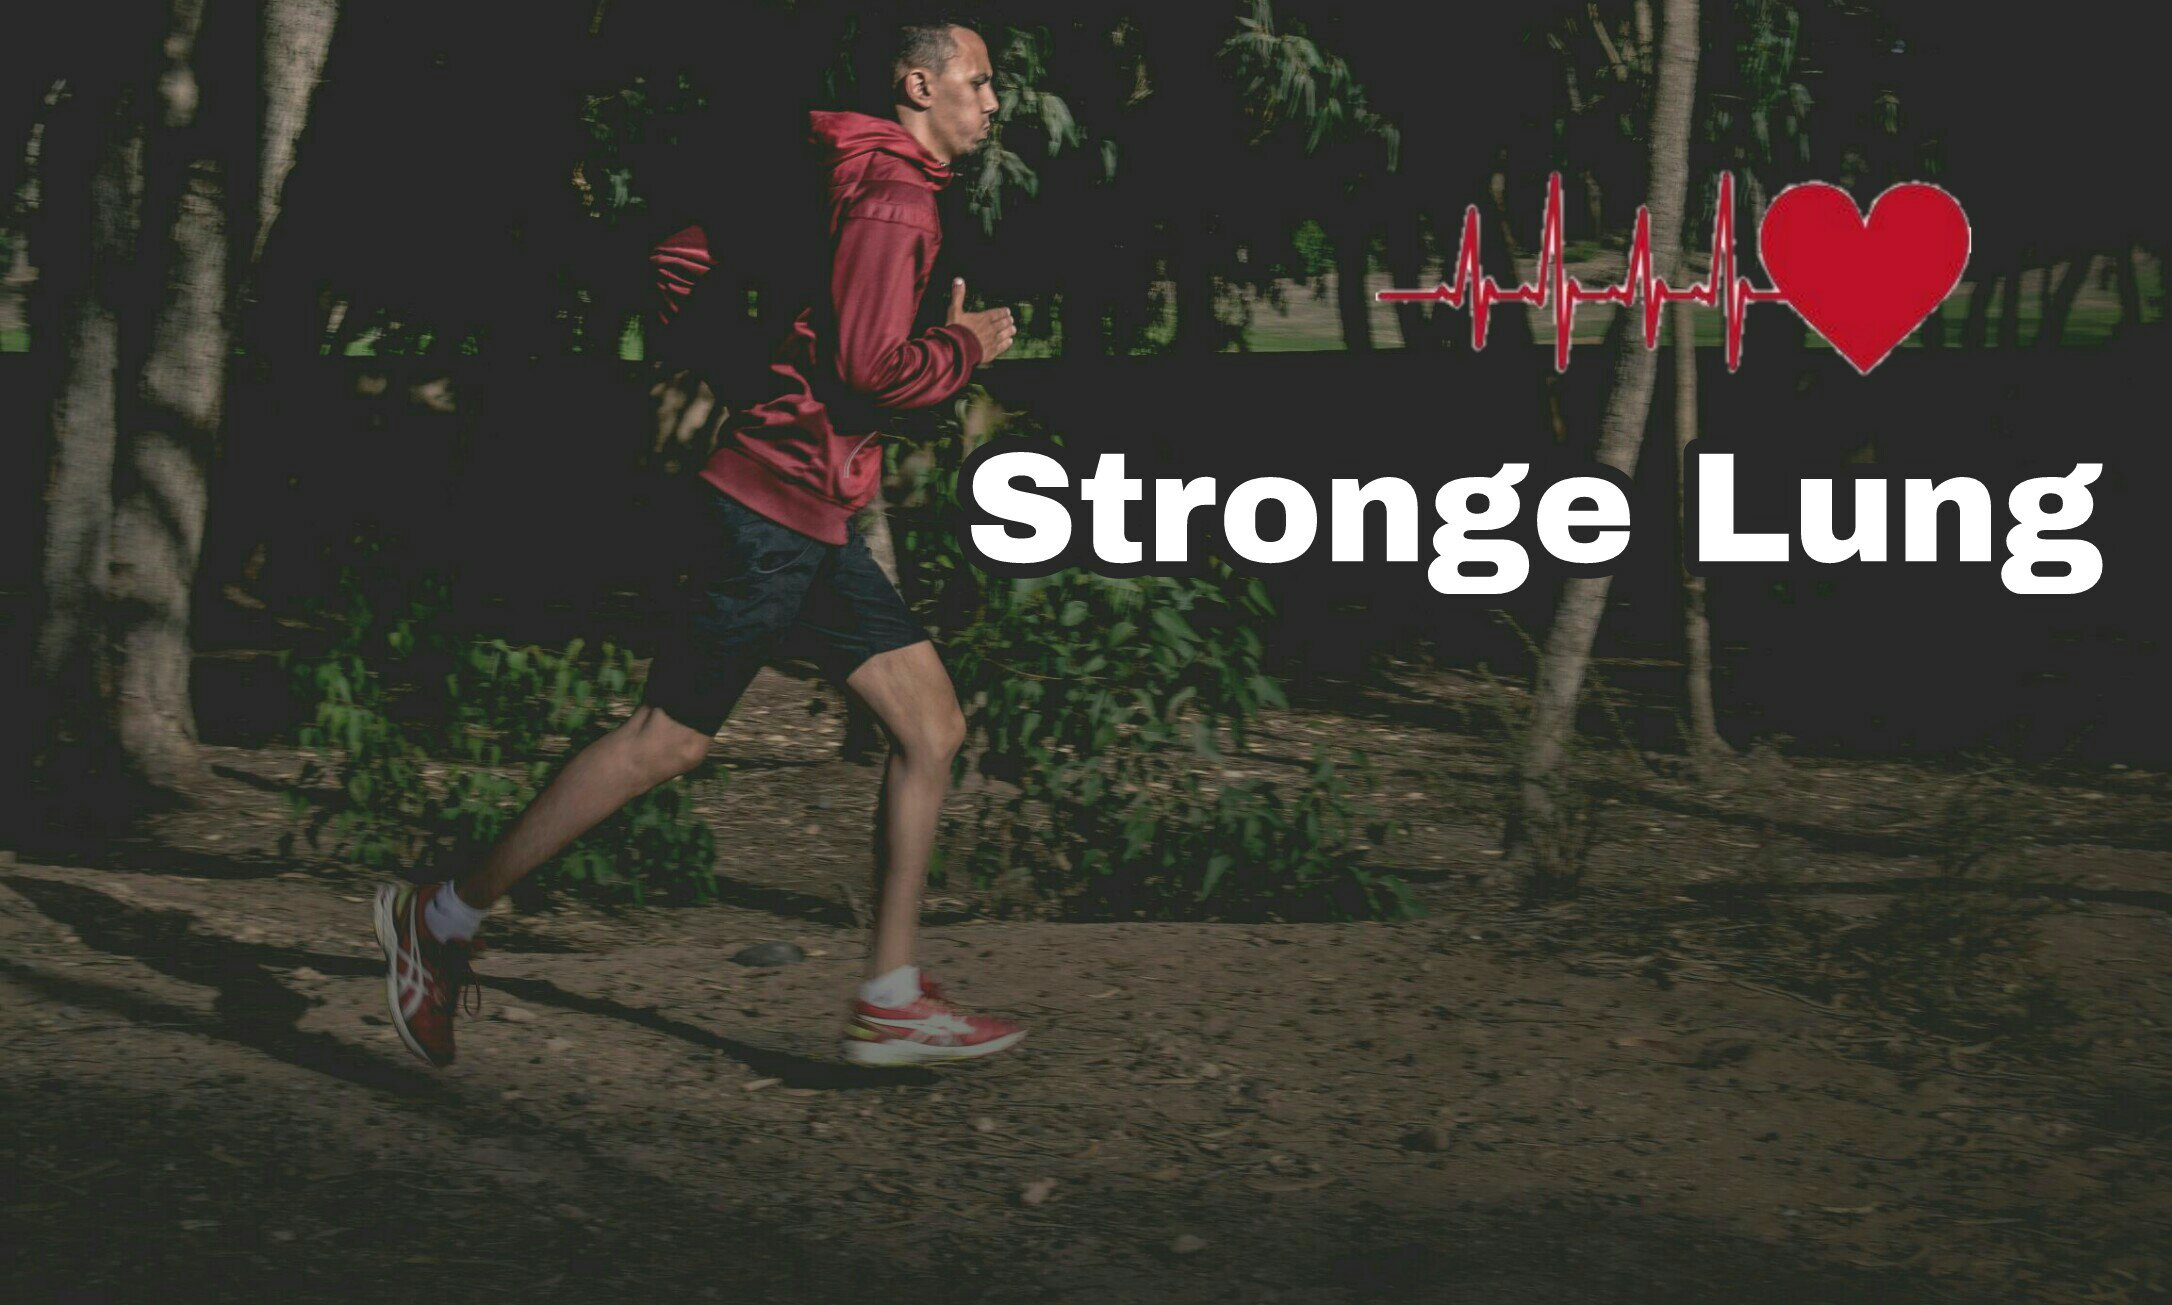 Strong lung for running stamina